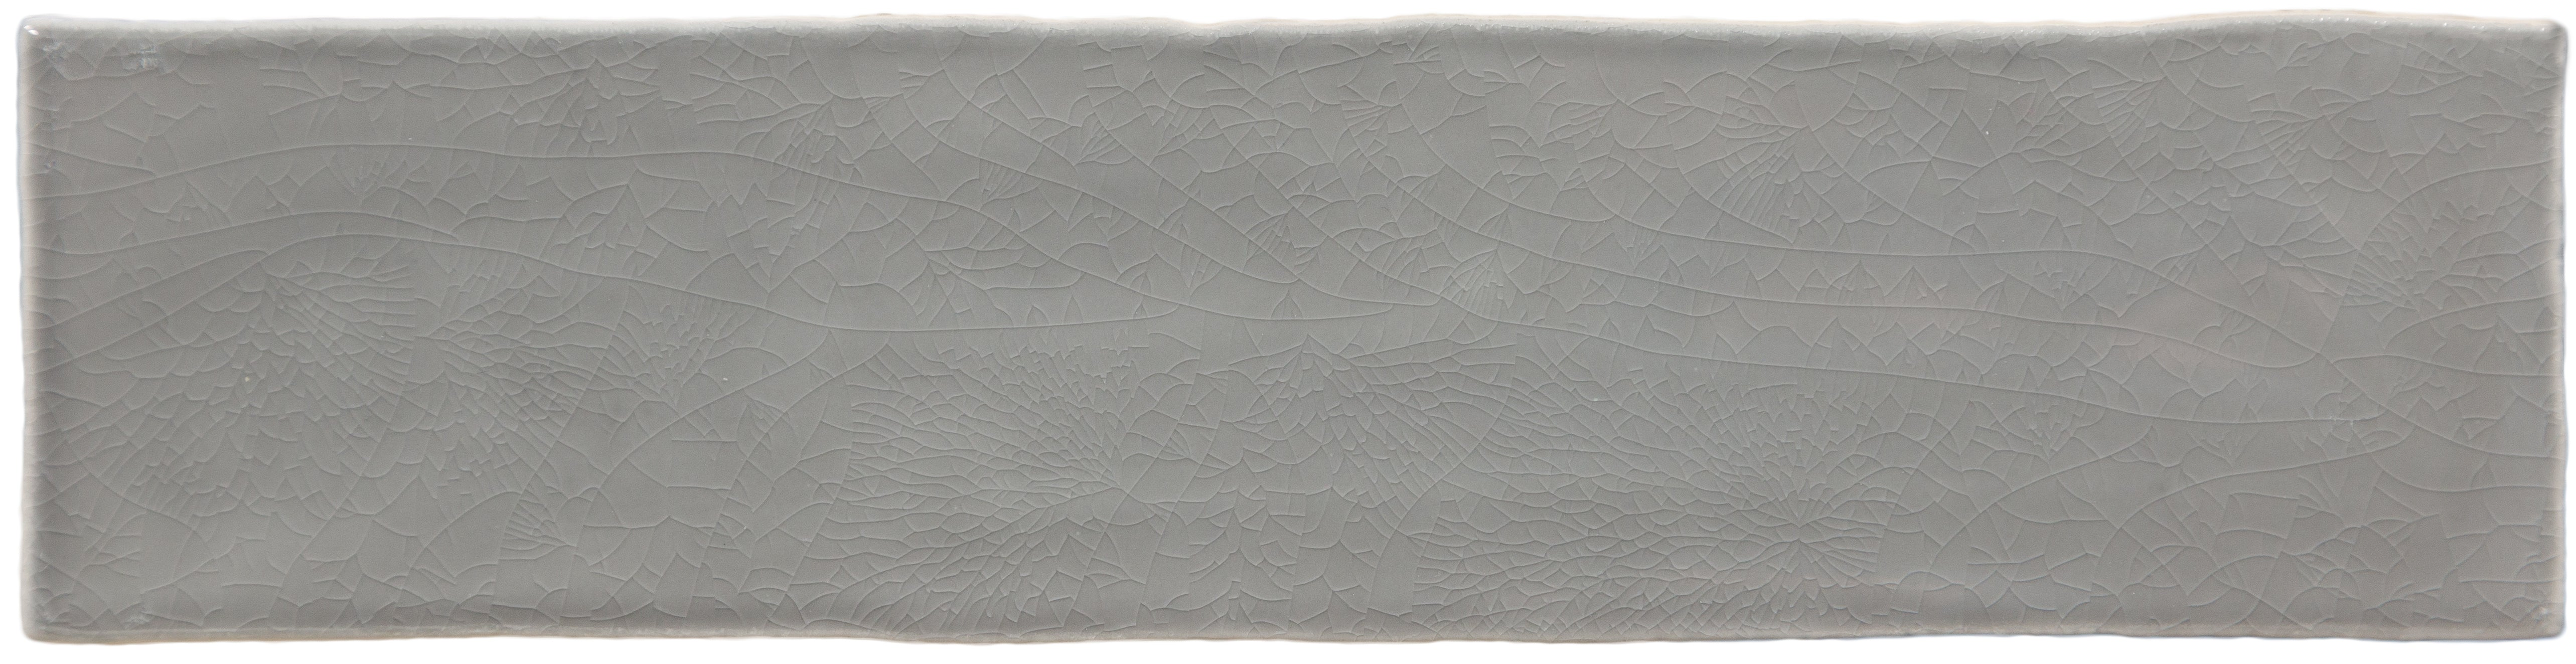 B Train Grey Mist Field Tile product photo